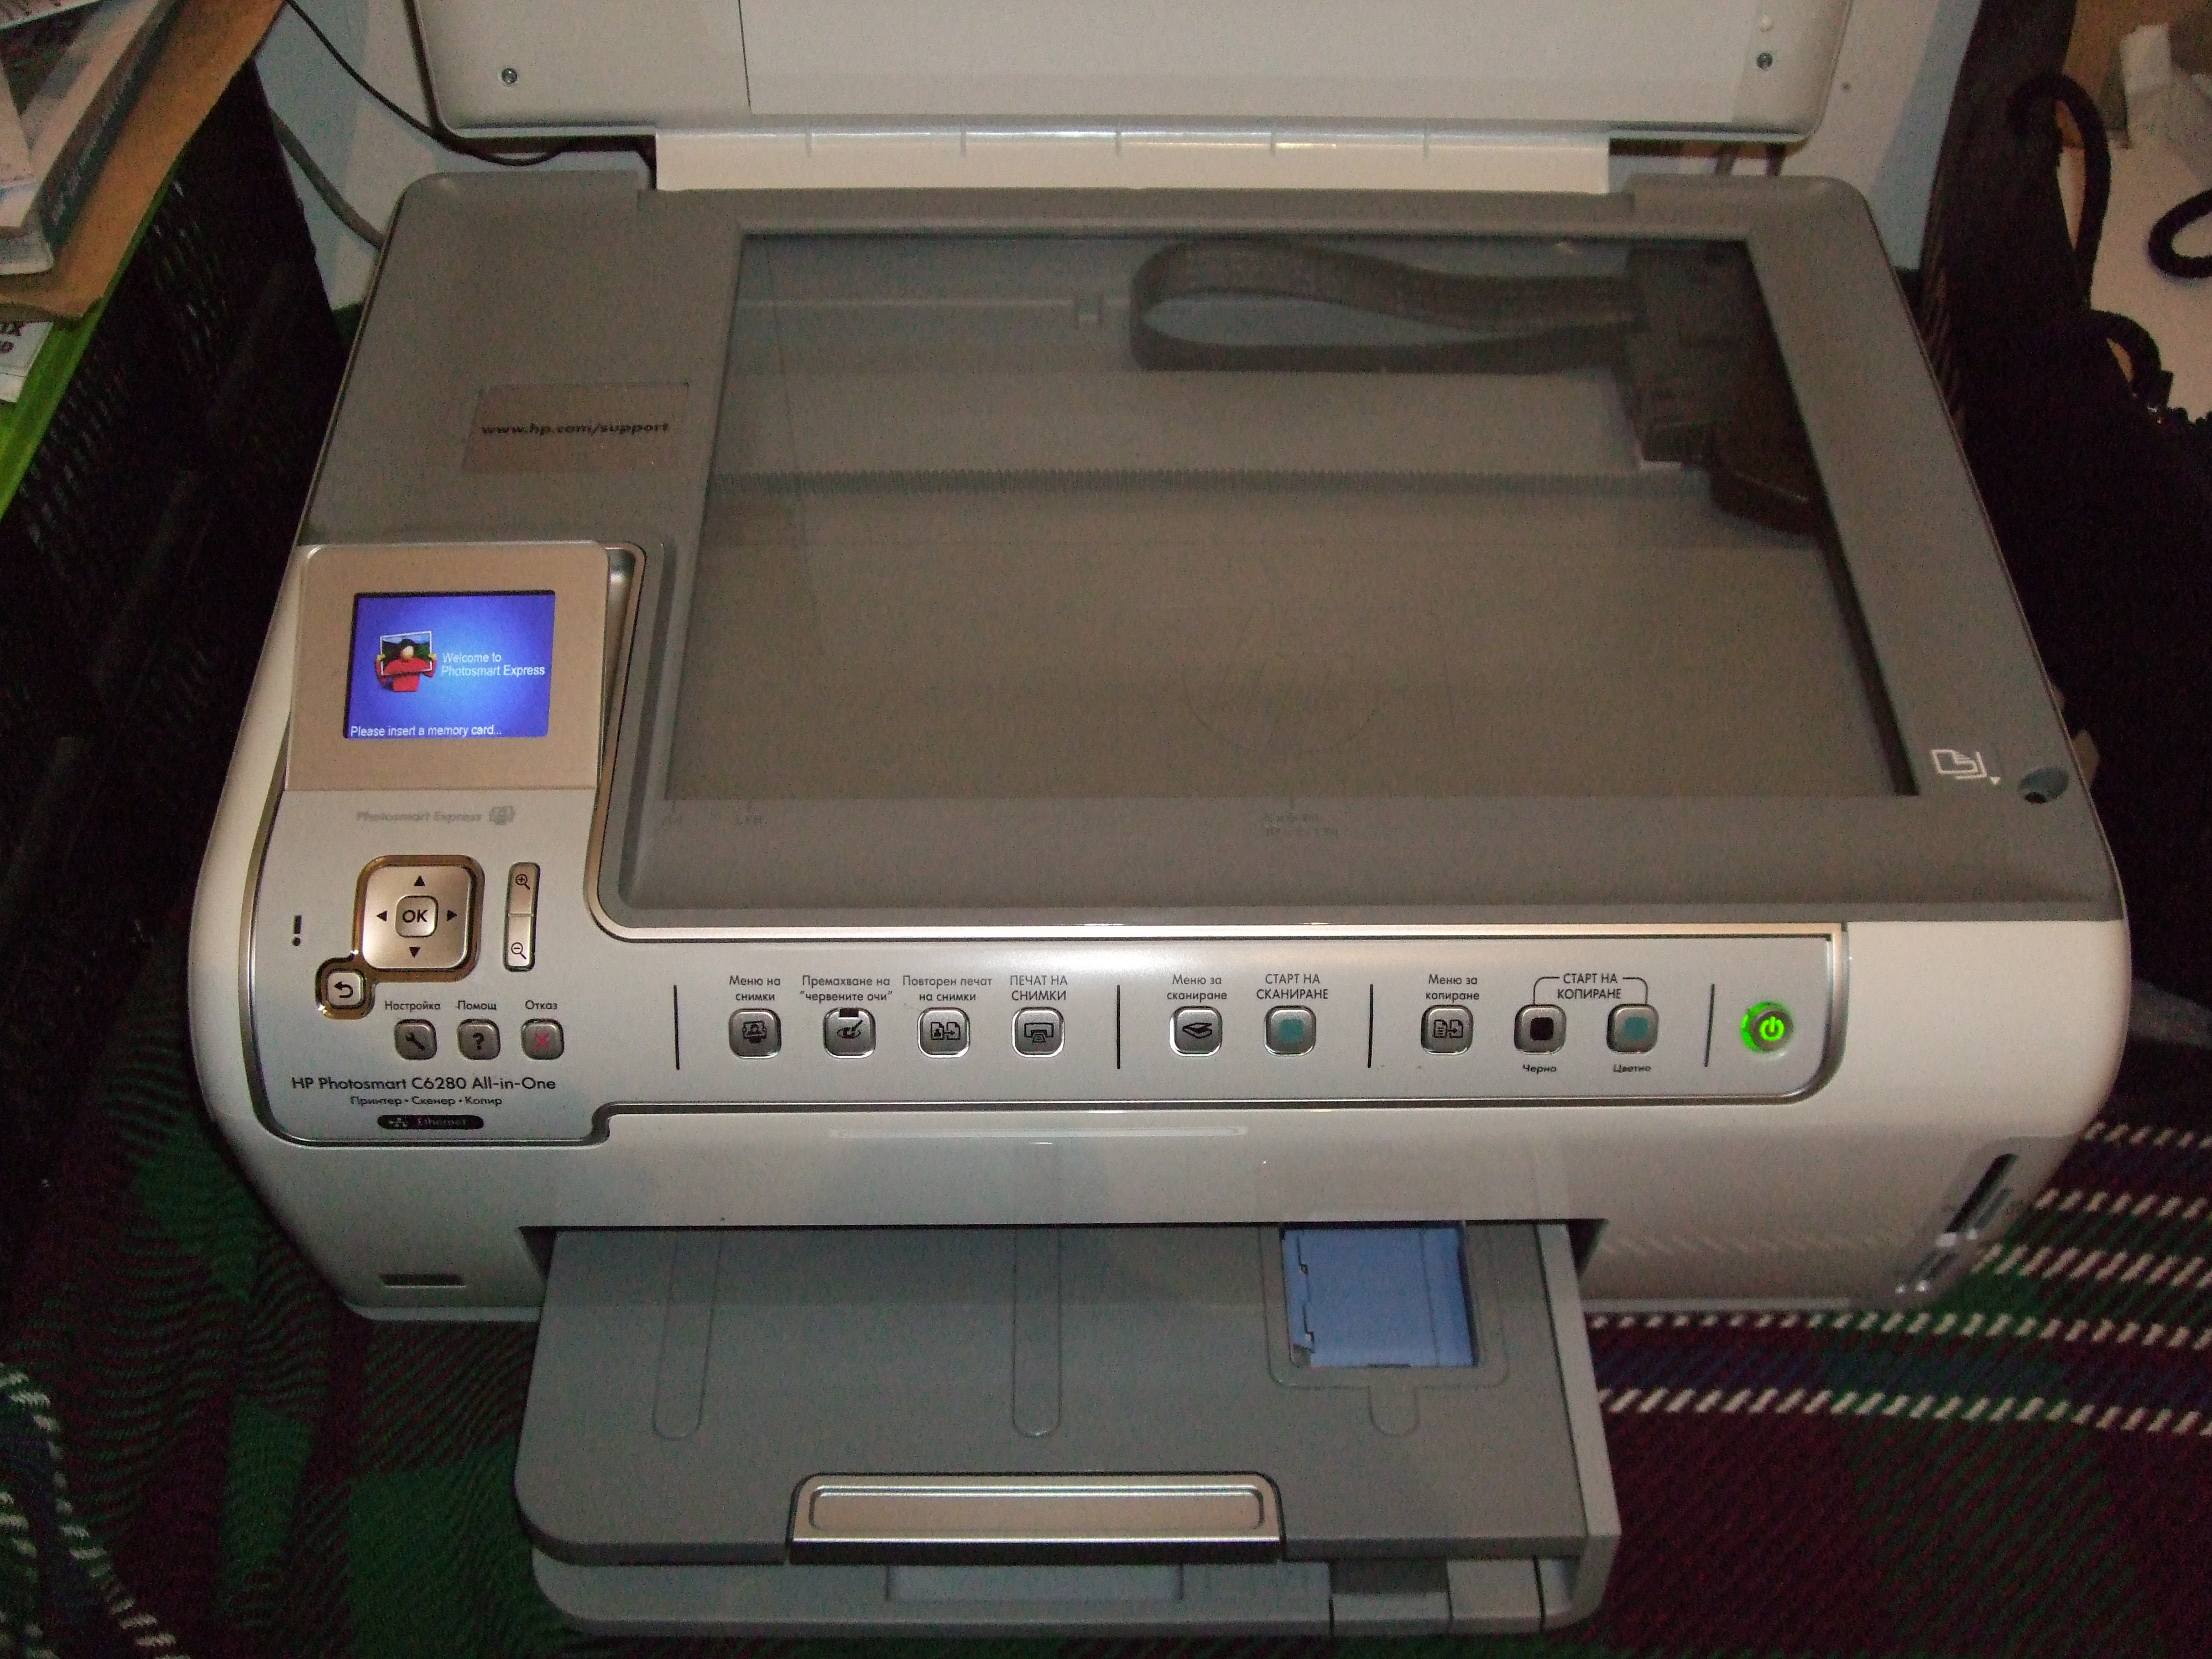 Picture of the HP Photosmart C6280 All-in-One device taken from the front